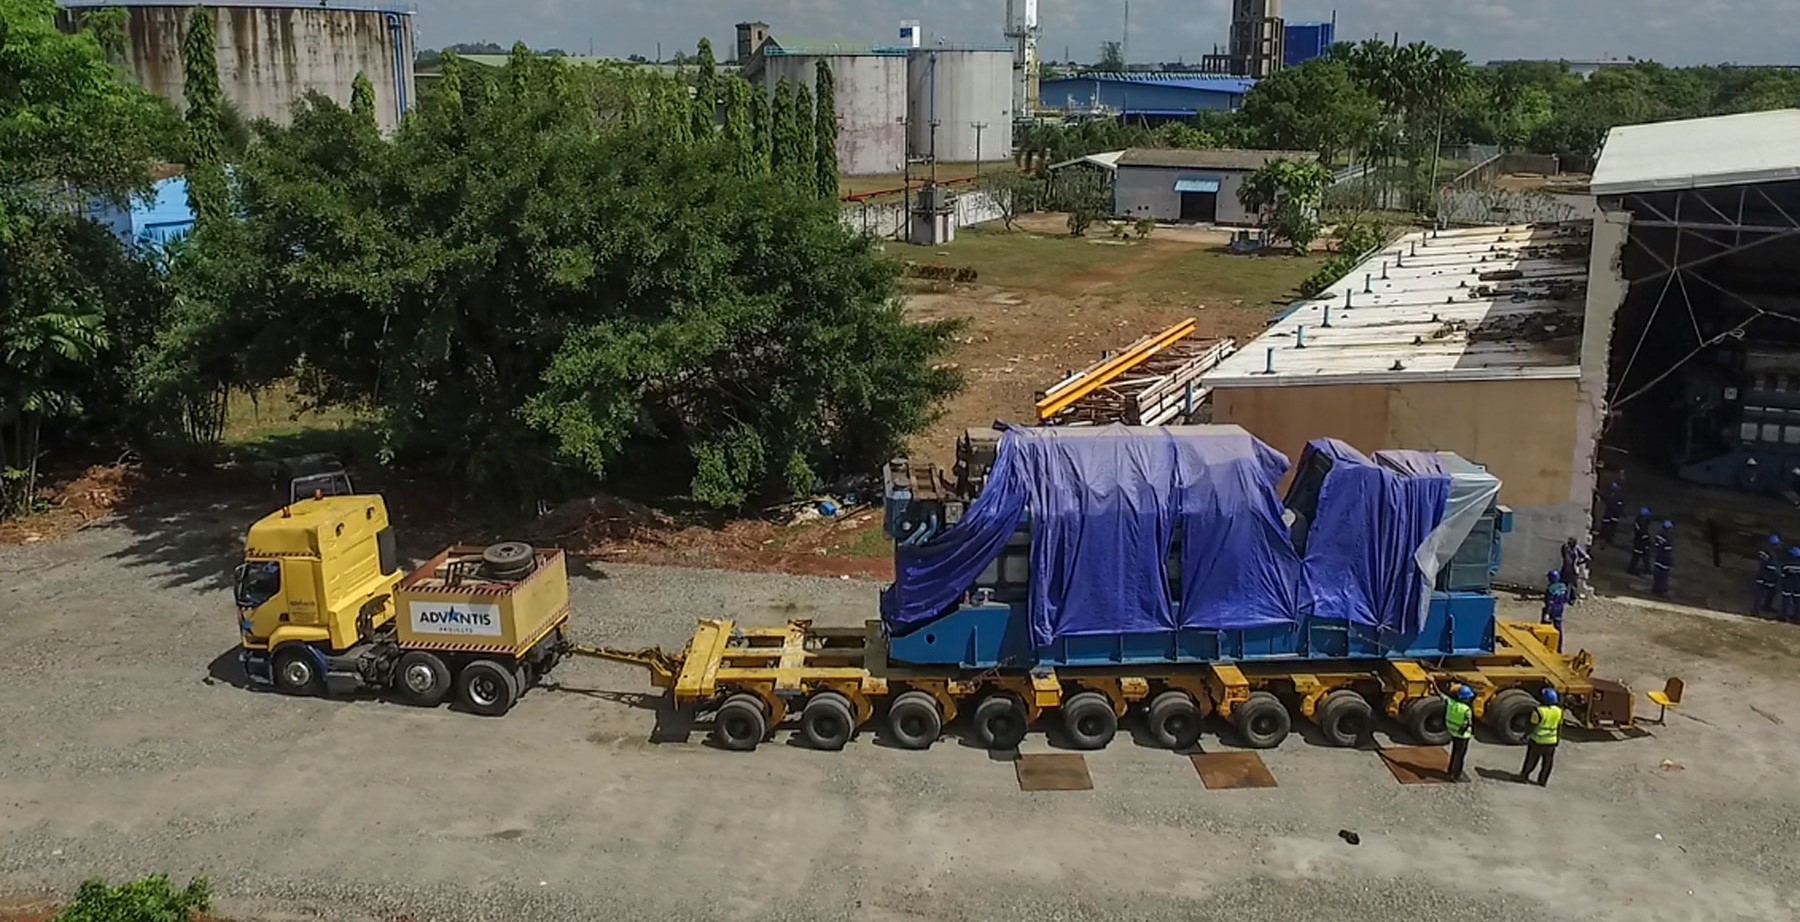 Advantis-Projects-multi-axel-trailer-used-for-the-relocation-of-the-power-plant (2)